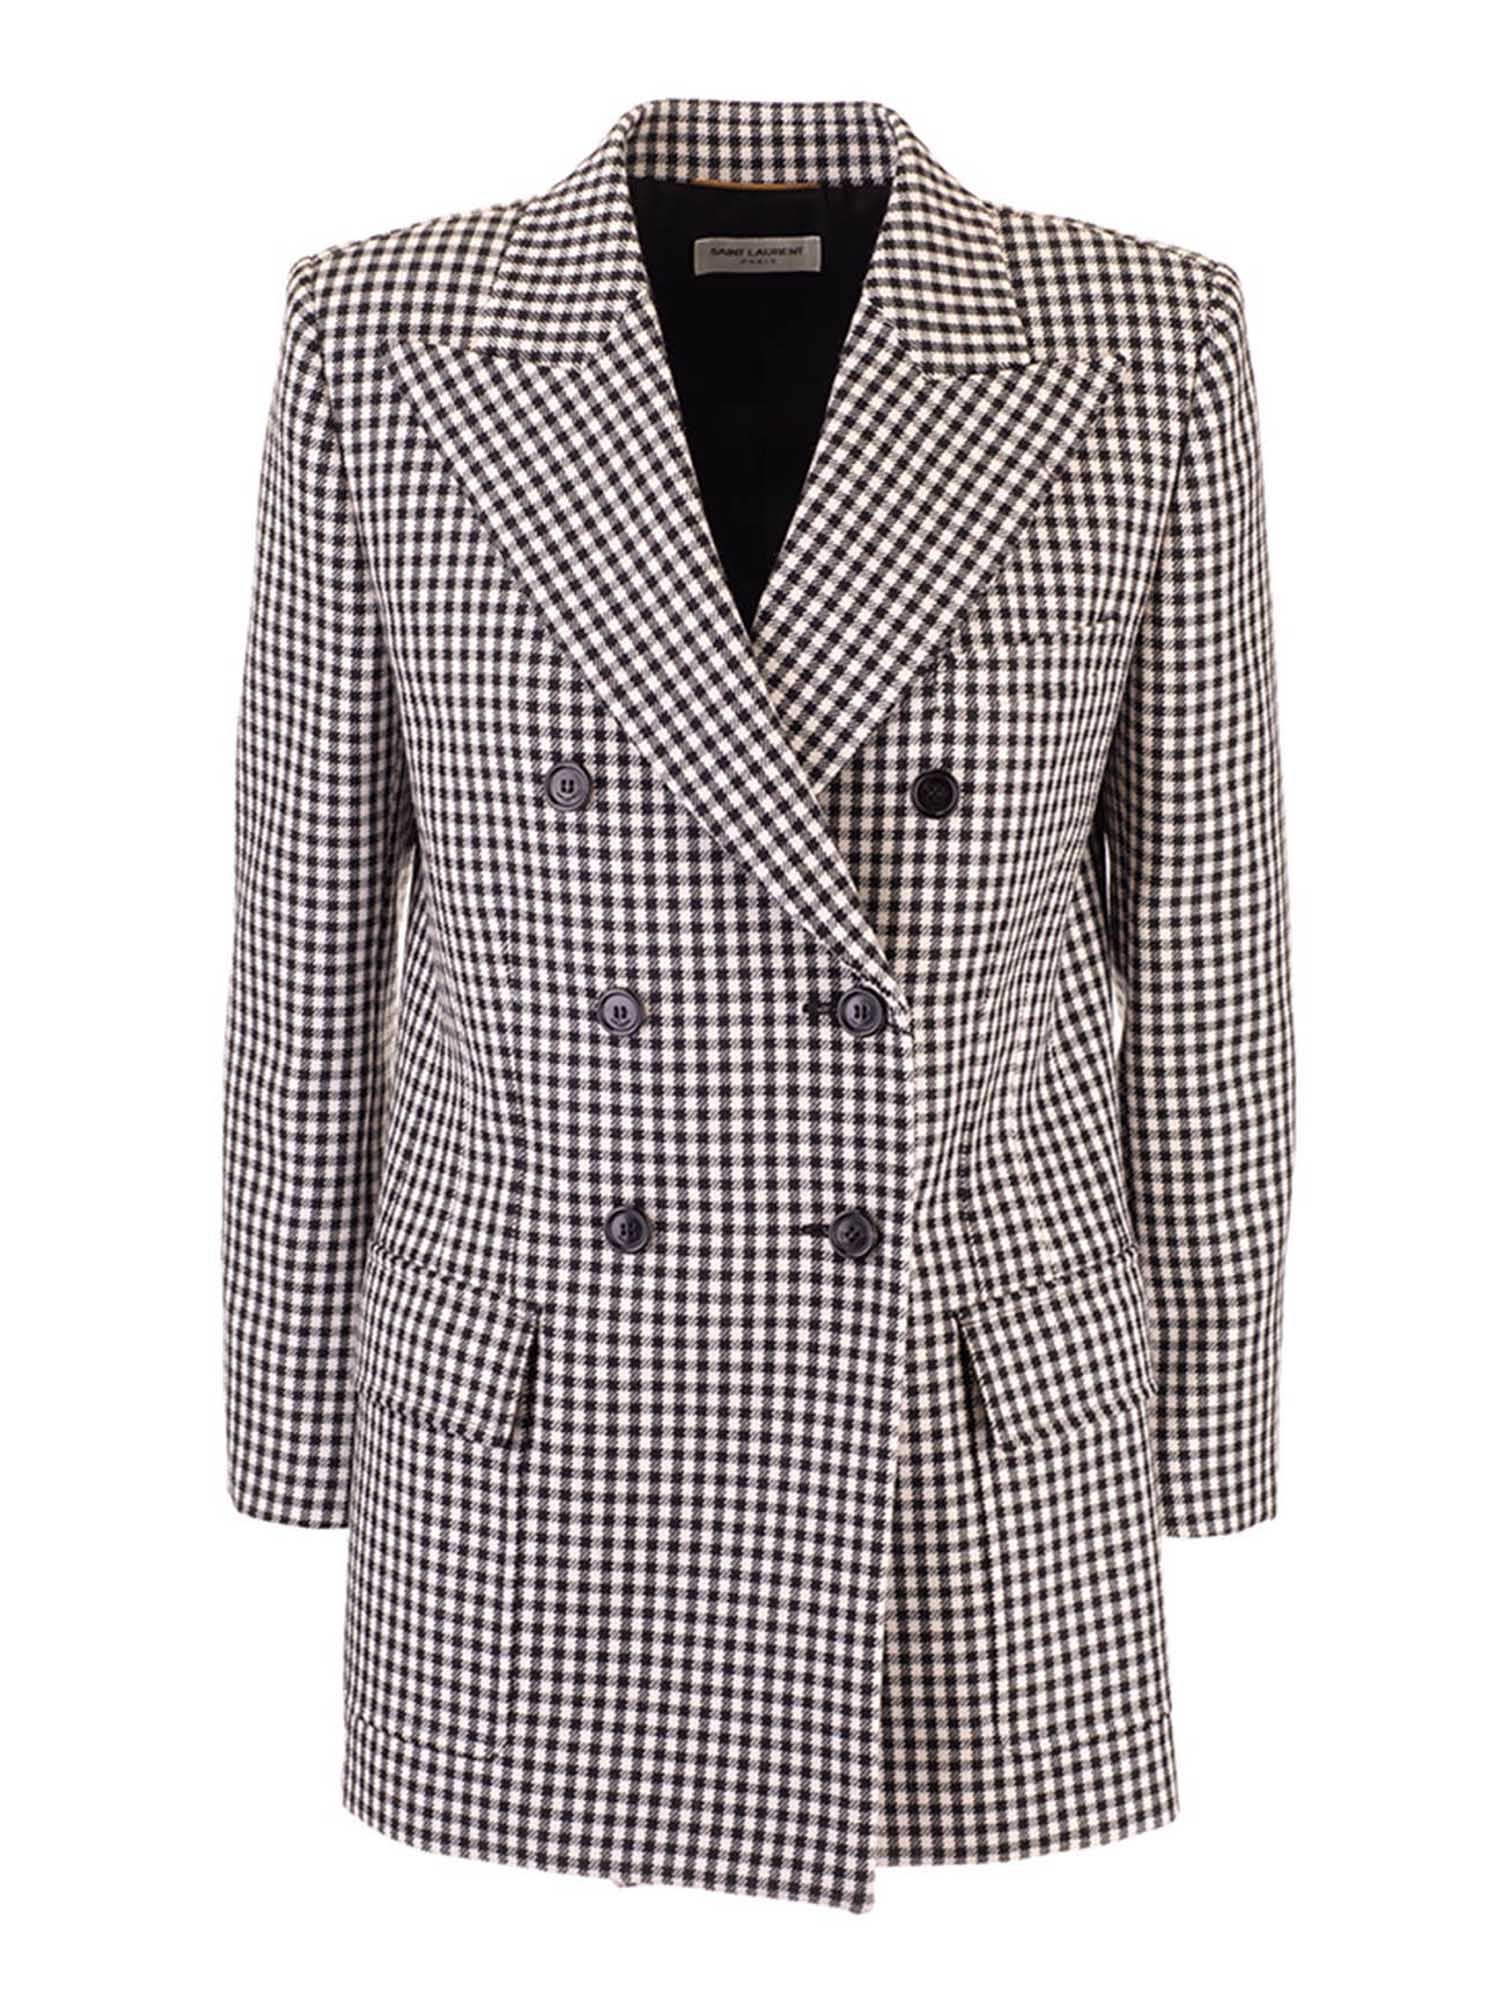 Saint Laurent CHECKED JACQUARD JACKET IN WHITE AND BLACK